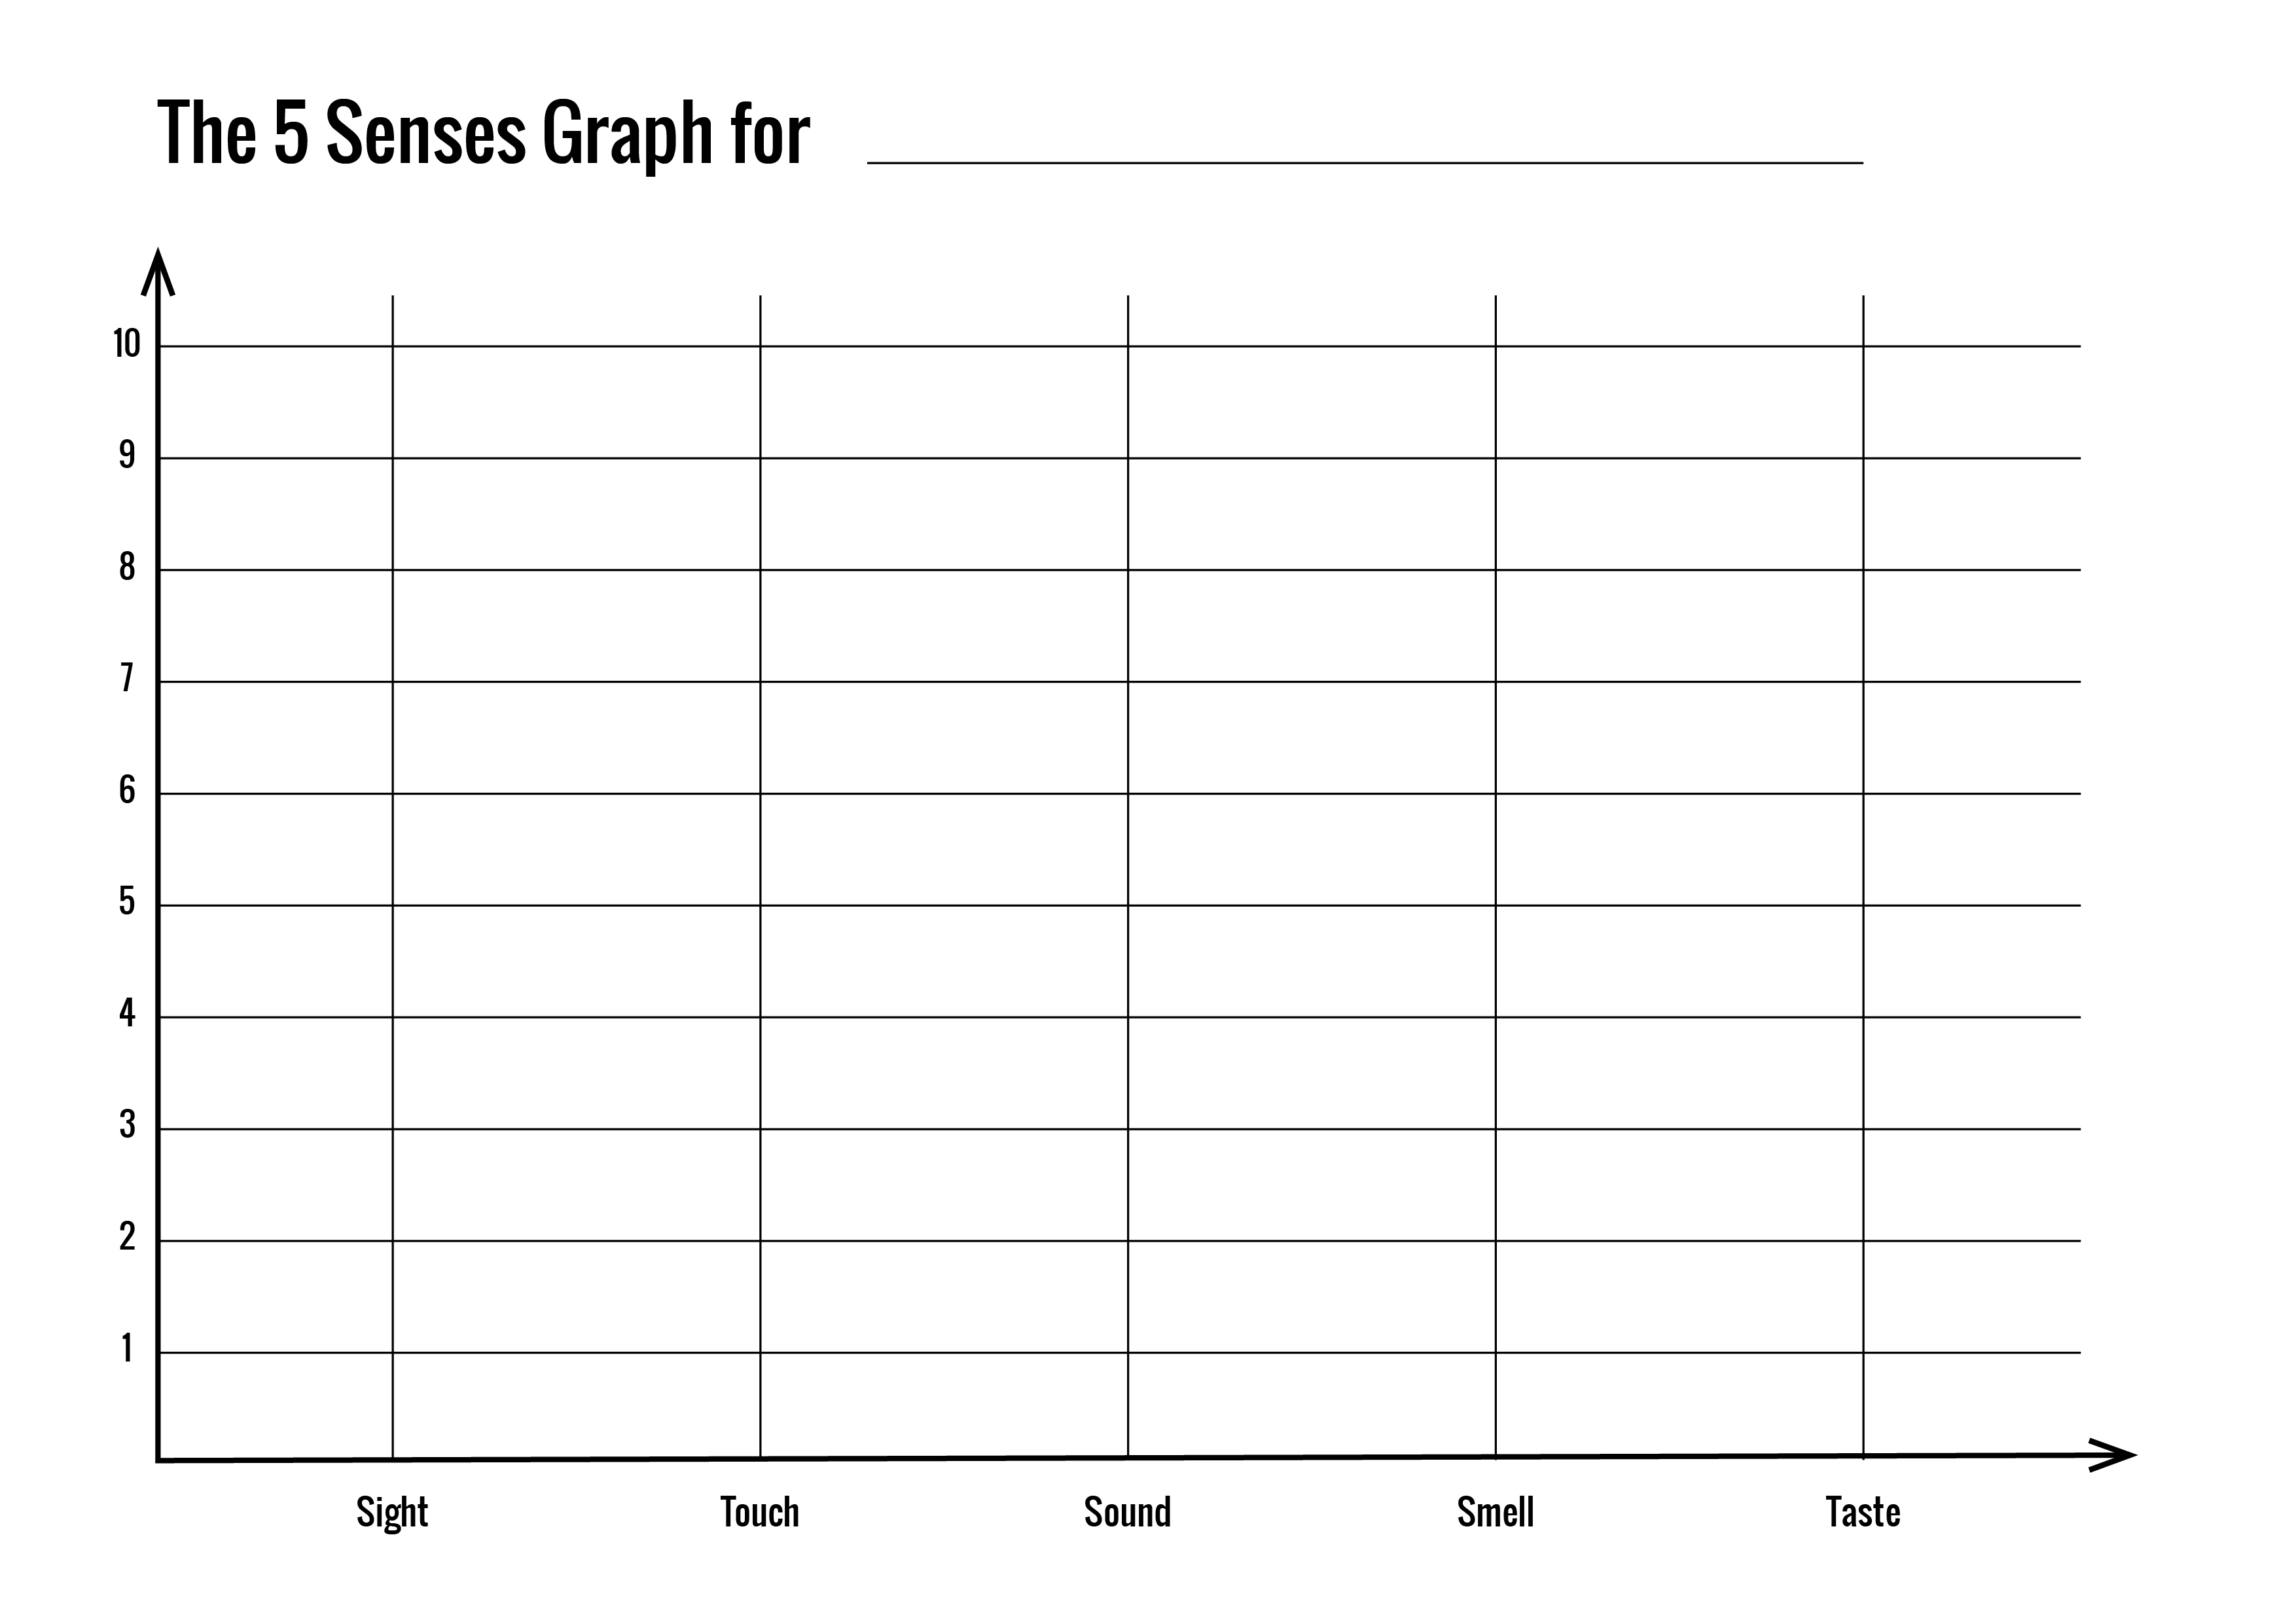 5_senses_graph_original